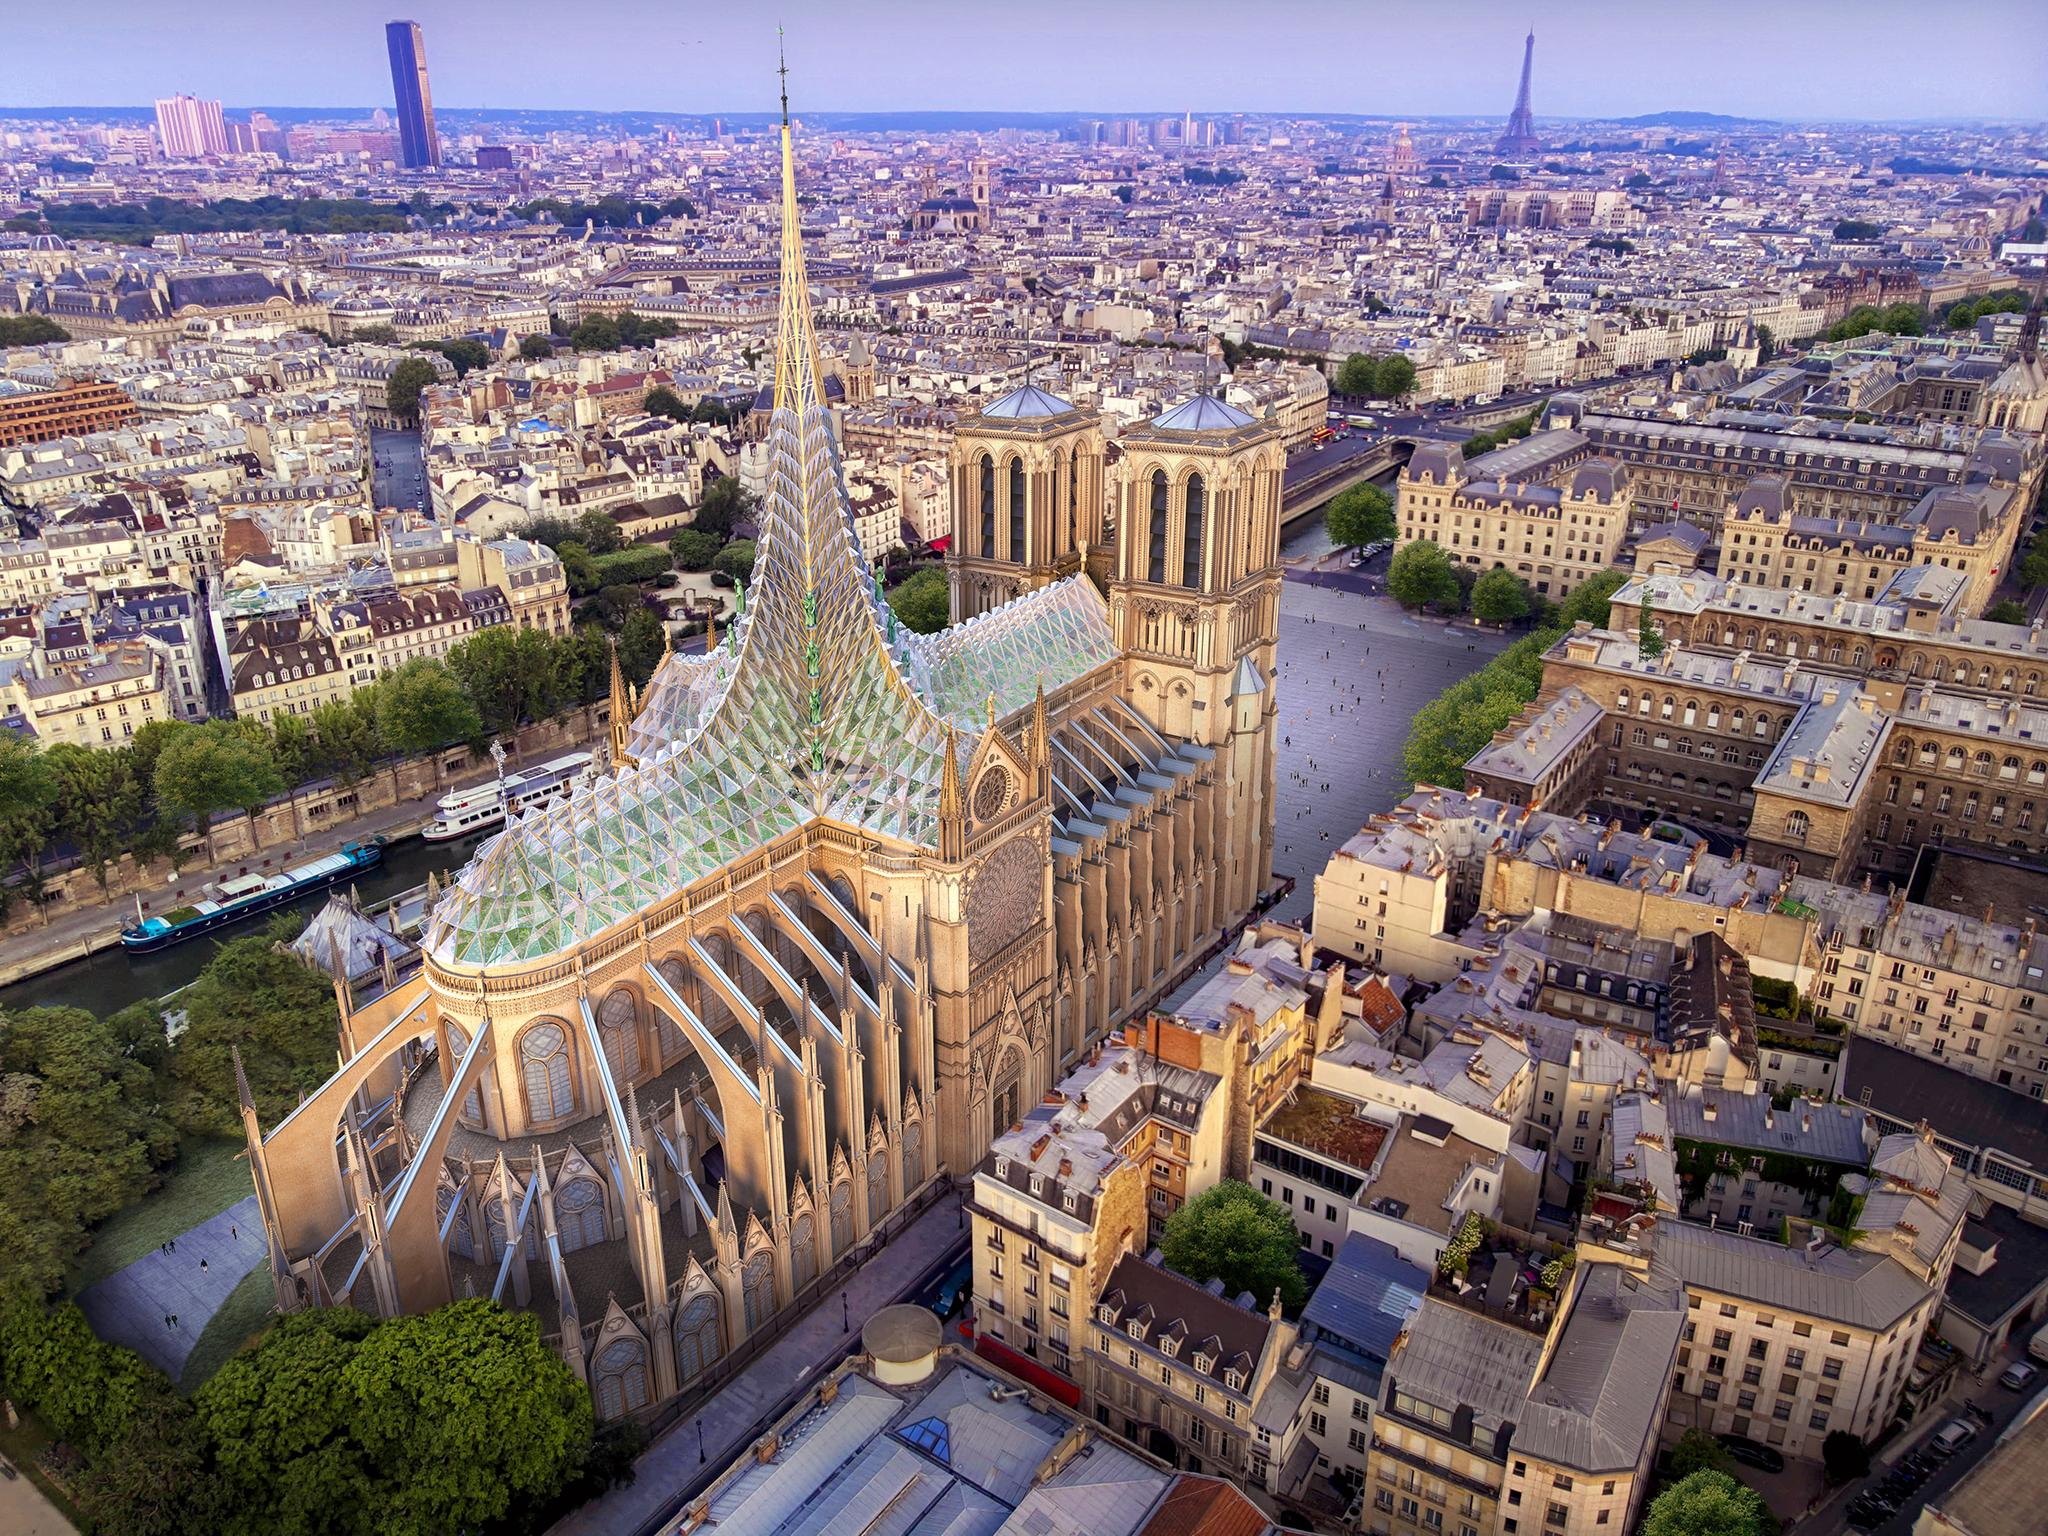 Notre Dame could provide energy for Paris with new roof